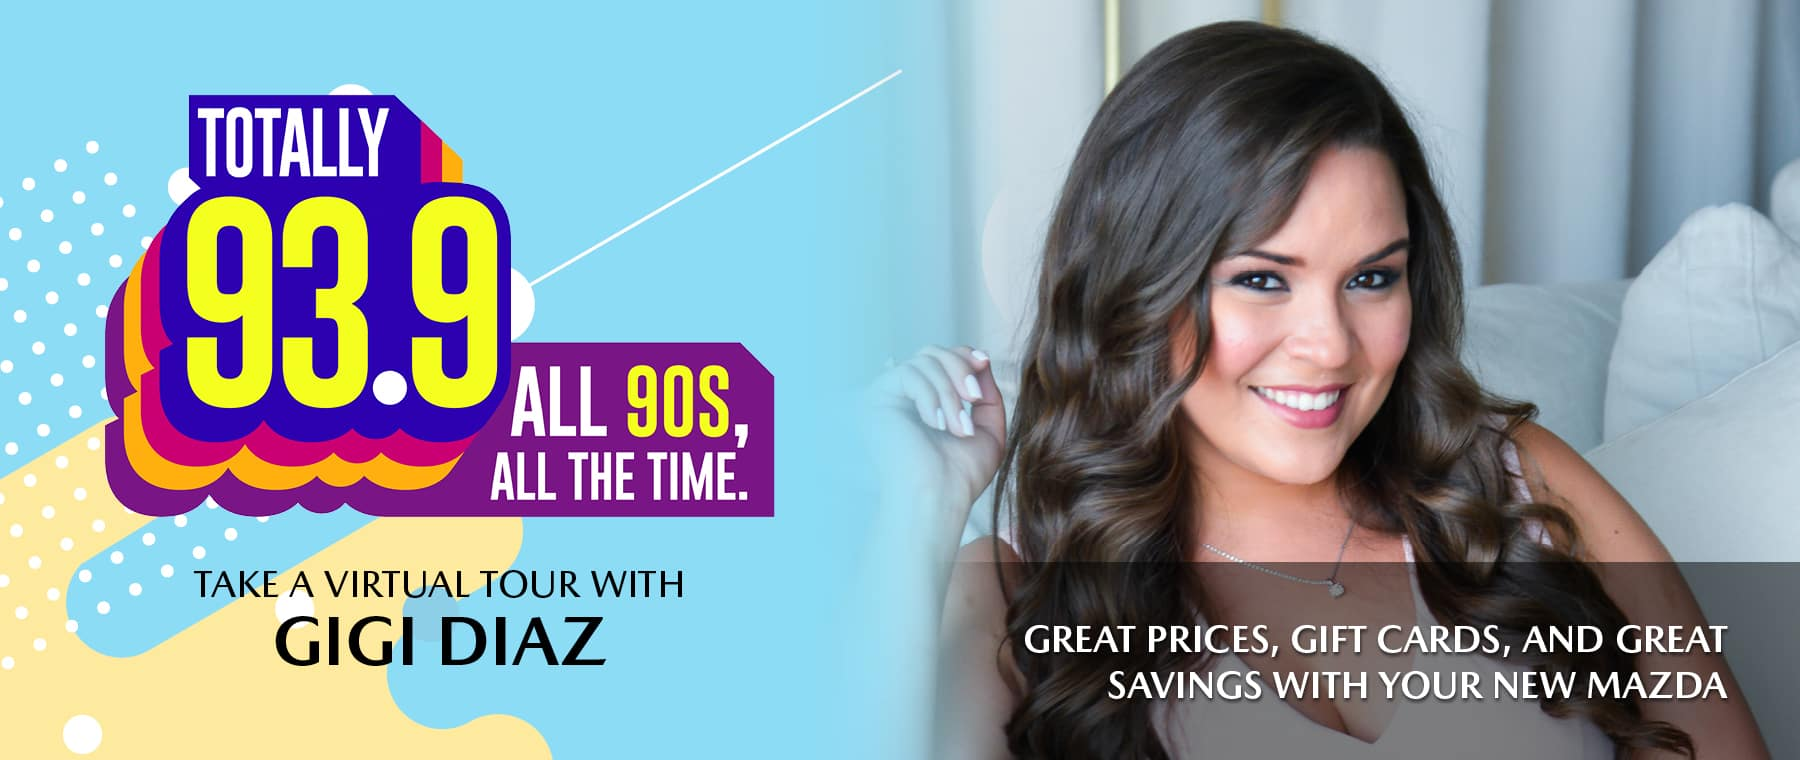 Totally 93.9, all 90s all the time. Take a virtual tour with Gigi Diaz. Great prices, gift cards, and our new Mazda sale.